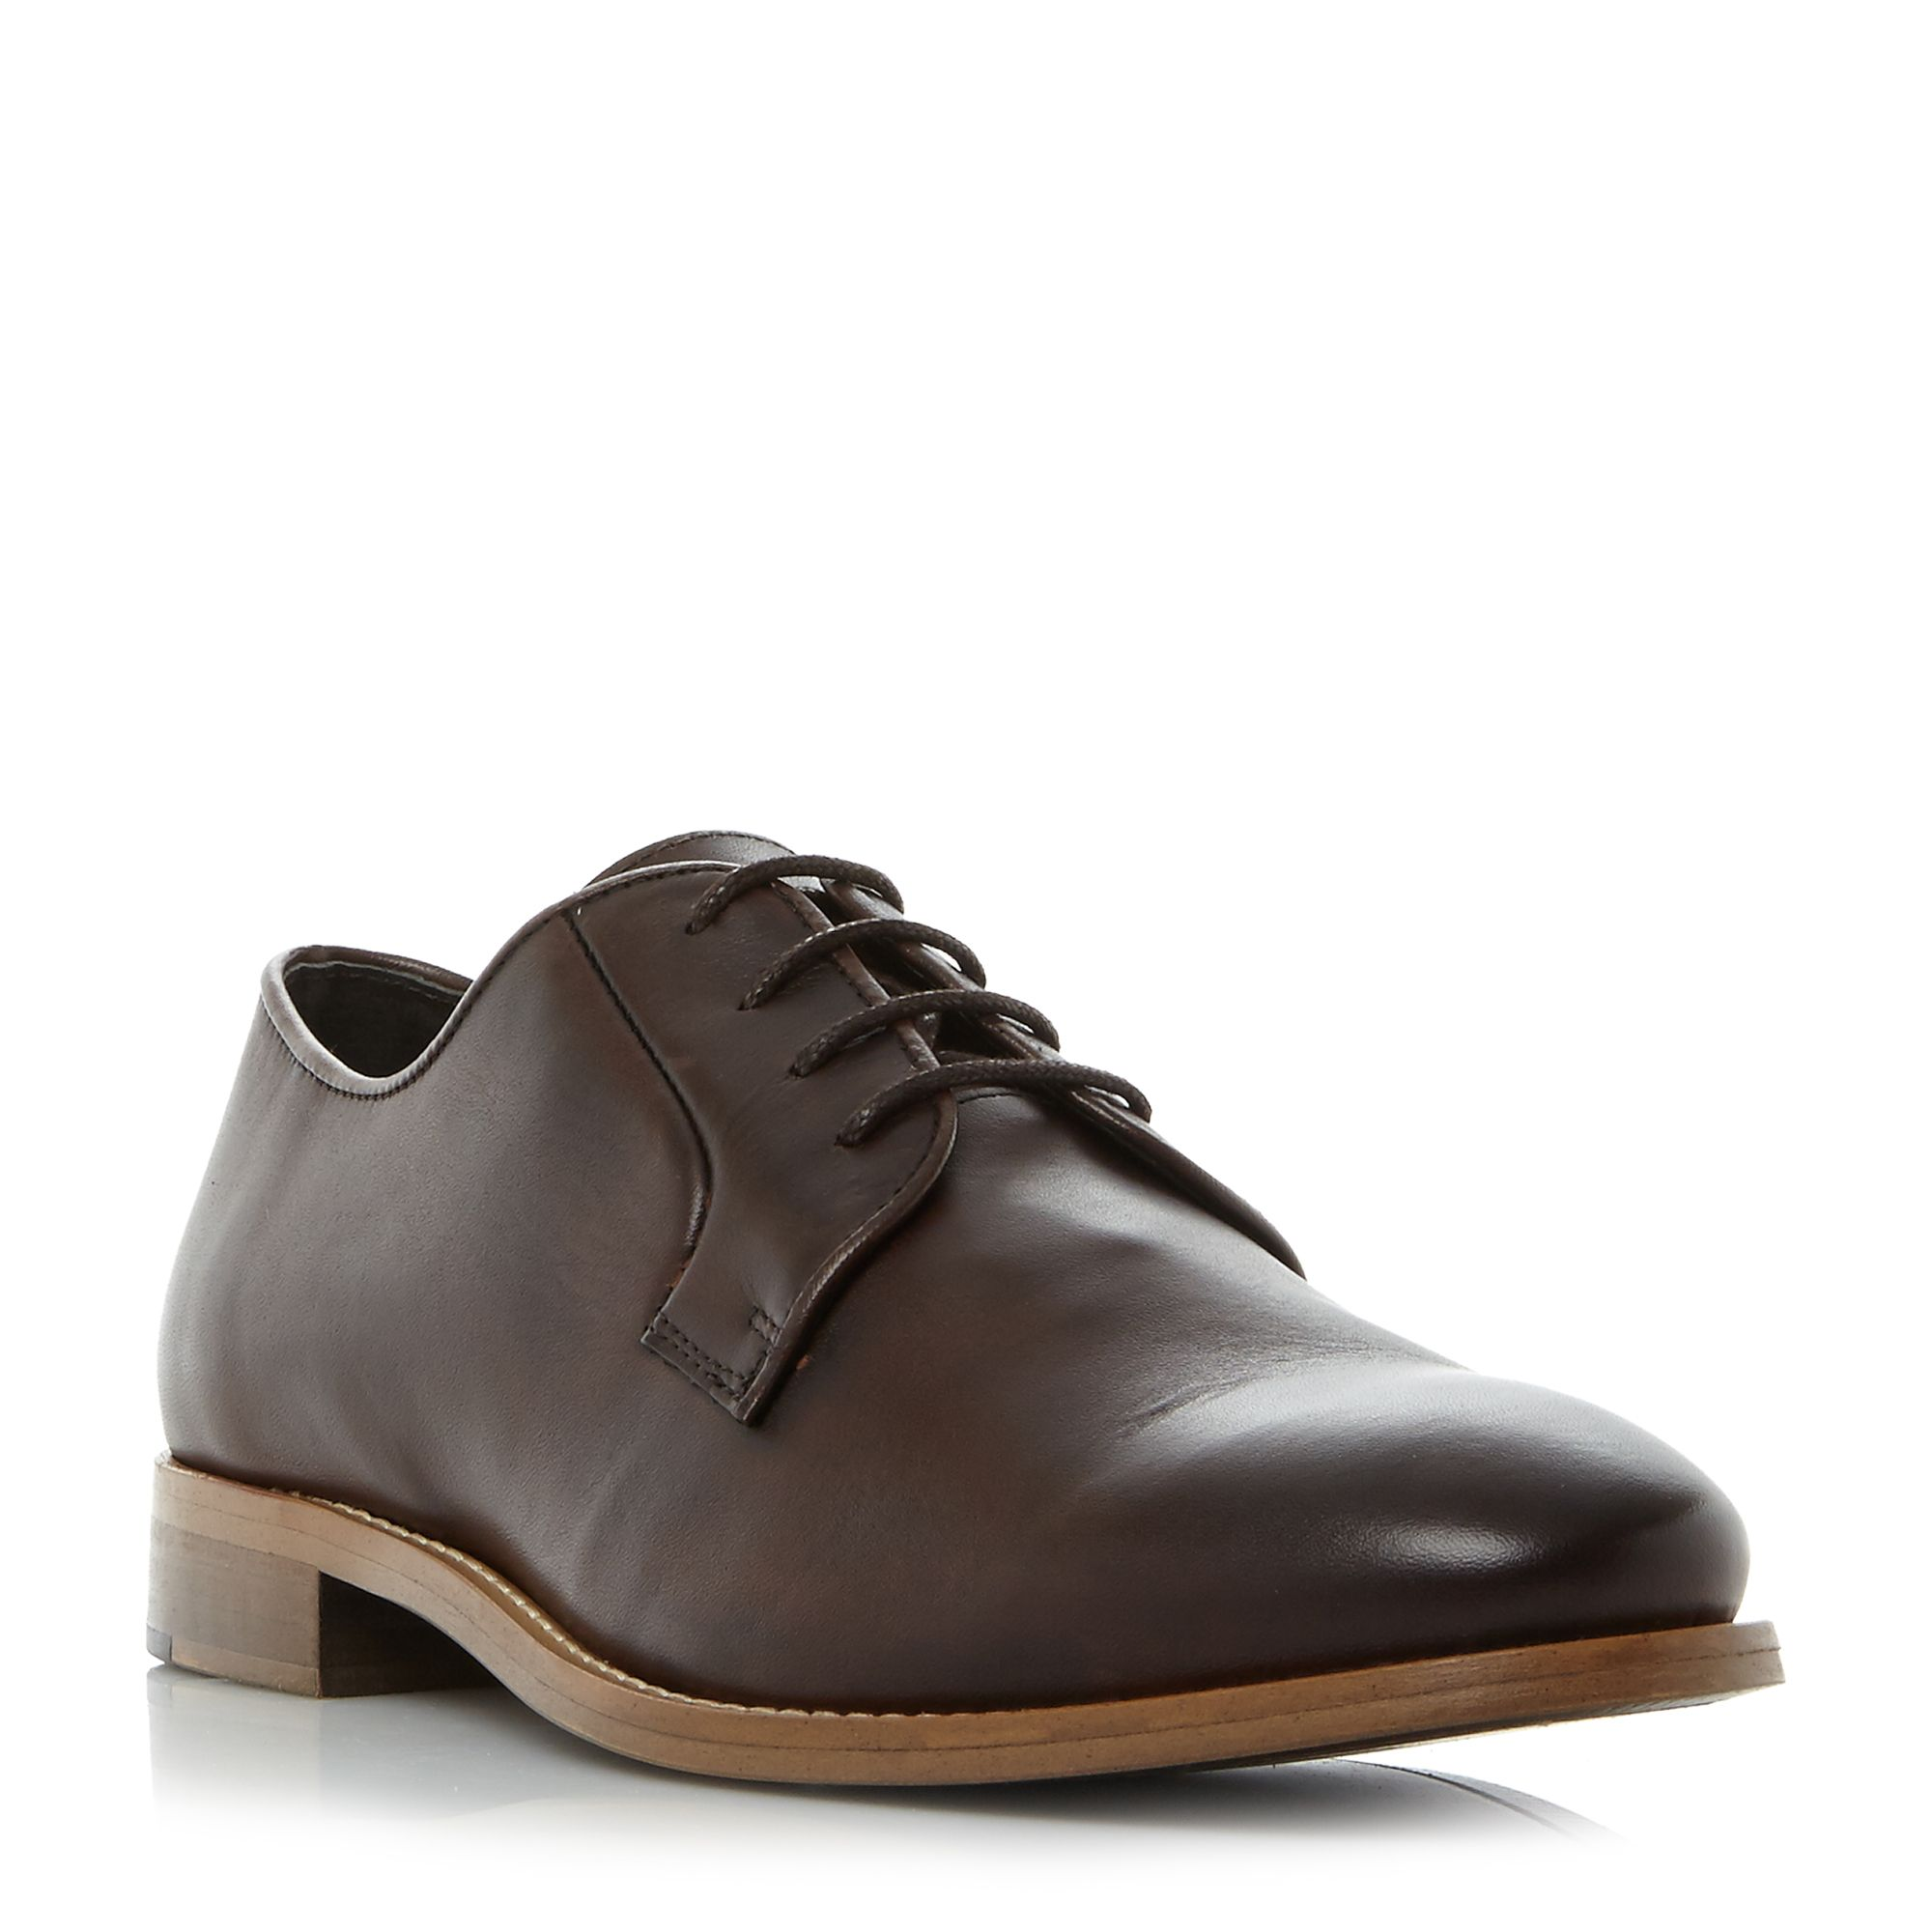 Bertie Porto natural sole lace up gibson shoes